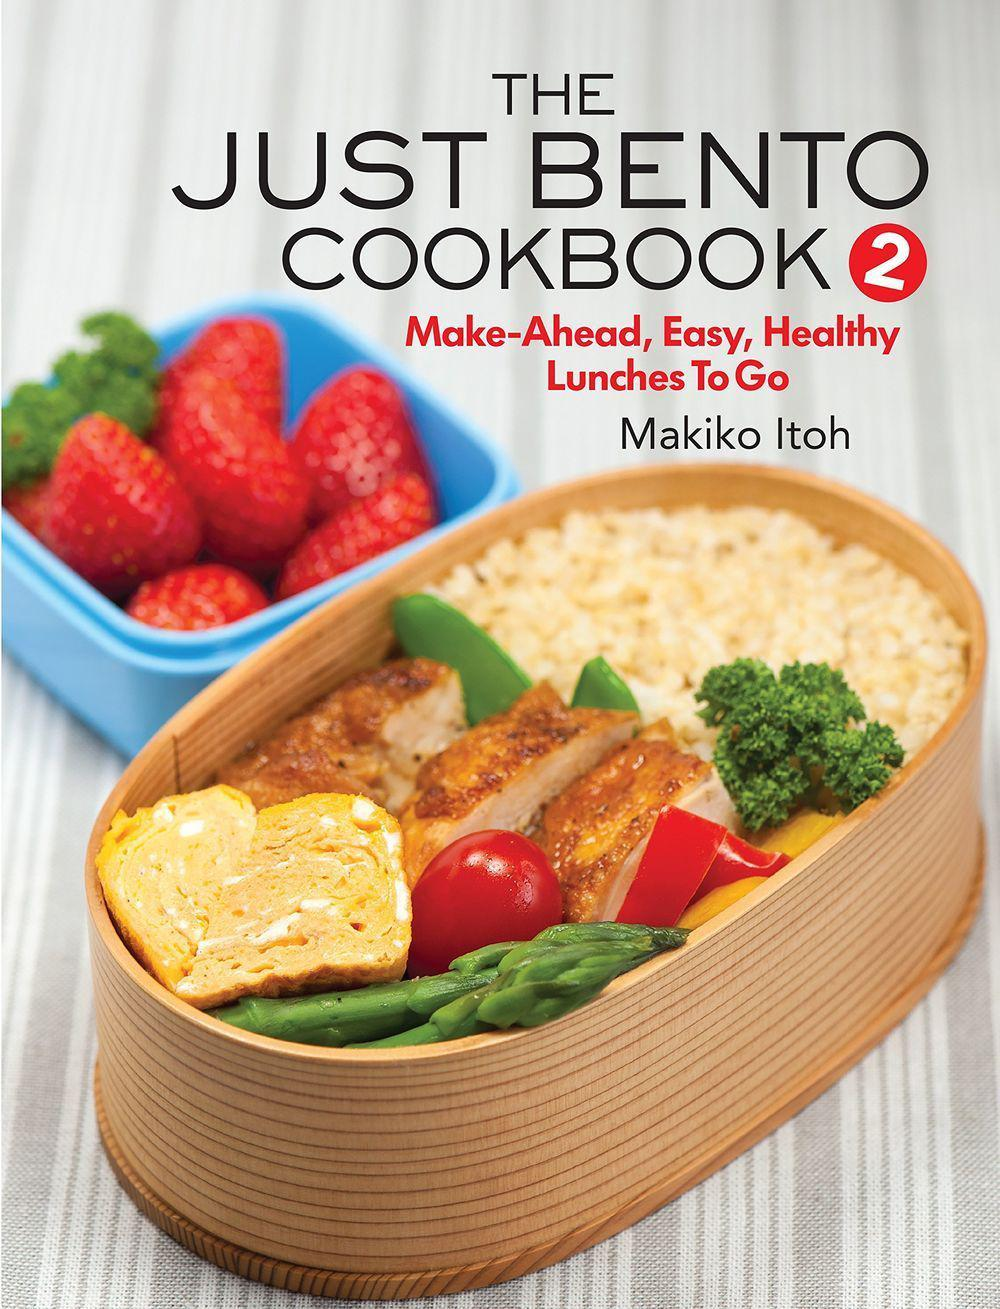 The Just Bento Cookbook 2: Make-Ahead, Easy, Healthy Lunches to Go by Makiko Itoh